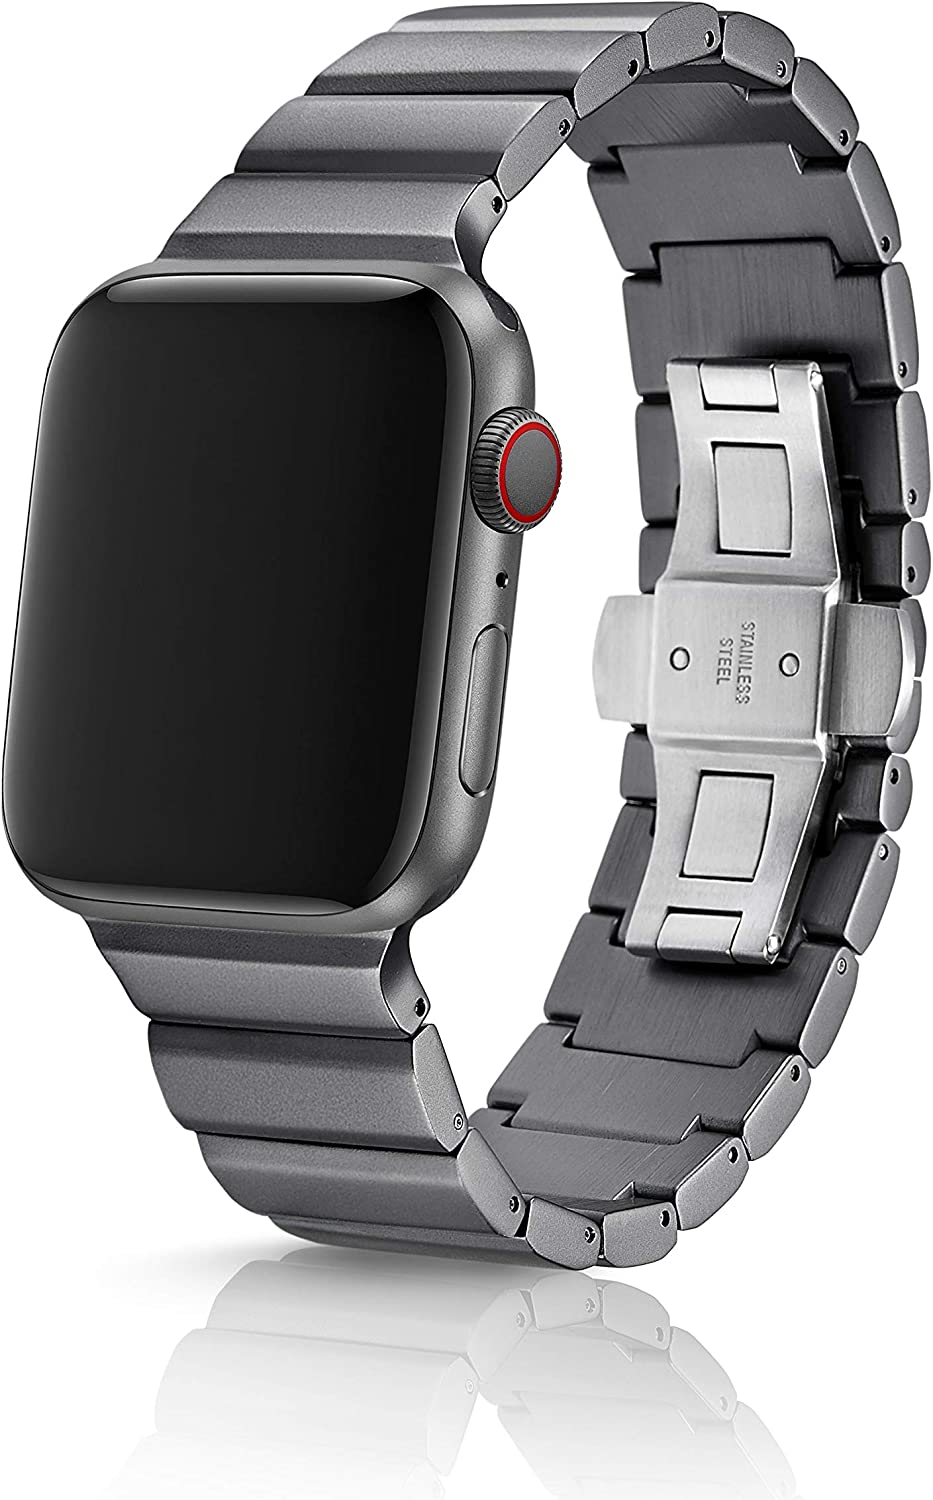 42/44mm JUUK Ligero Cosmic Grey LT Premium watch band made for the Apple Watch, using aircraft grade, hard anodized 6000 series aluminum with a solid stainless steel butterfly deployant buckle (matte)